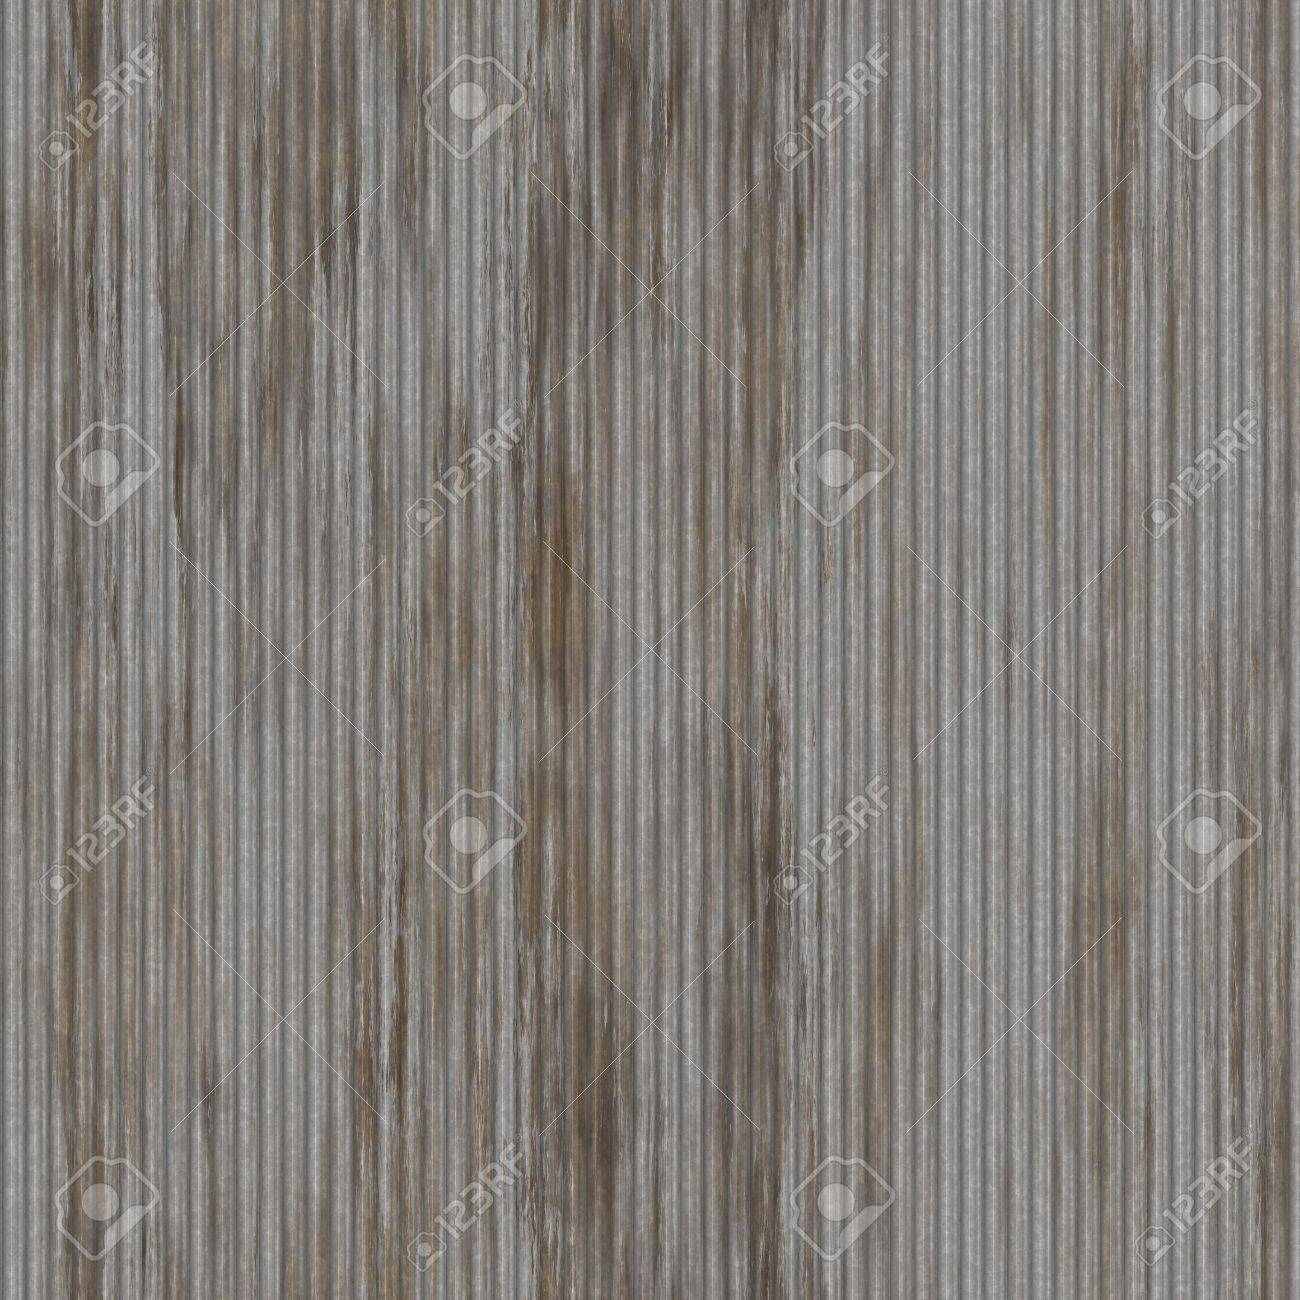 Corrugated metal ridged surface with corrosion seamless texture Stock Photo    5641617. Corrugated Metal Ridged Surface With Corrosion Seamless Texture